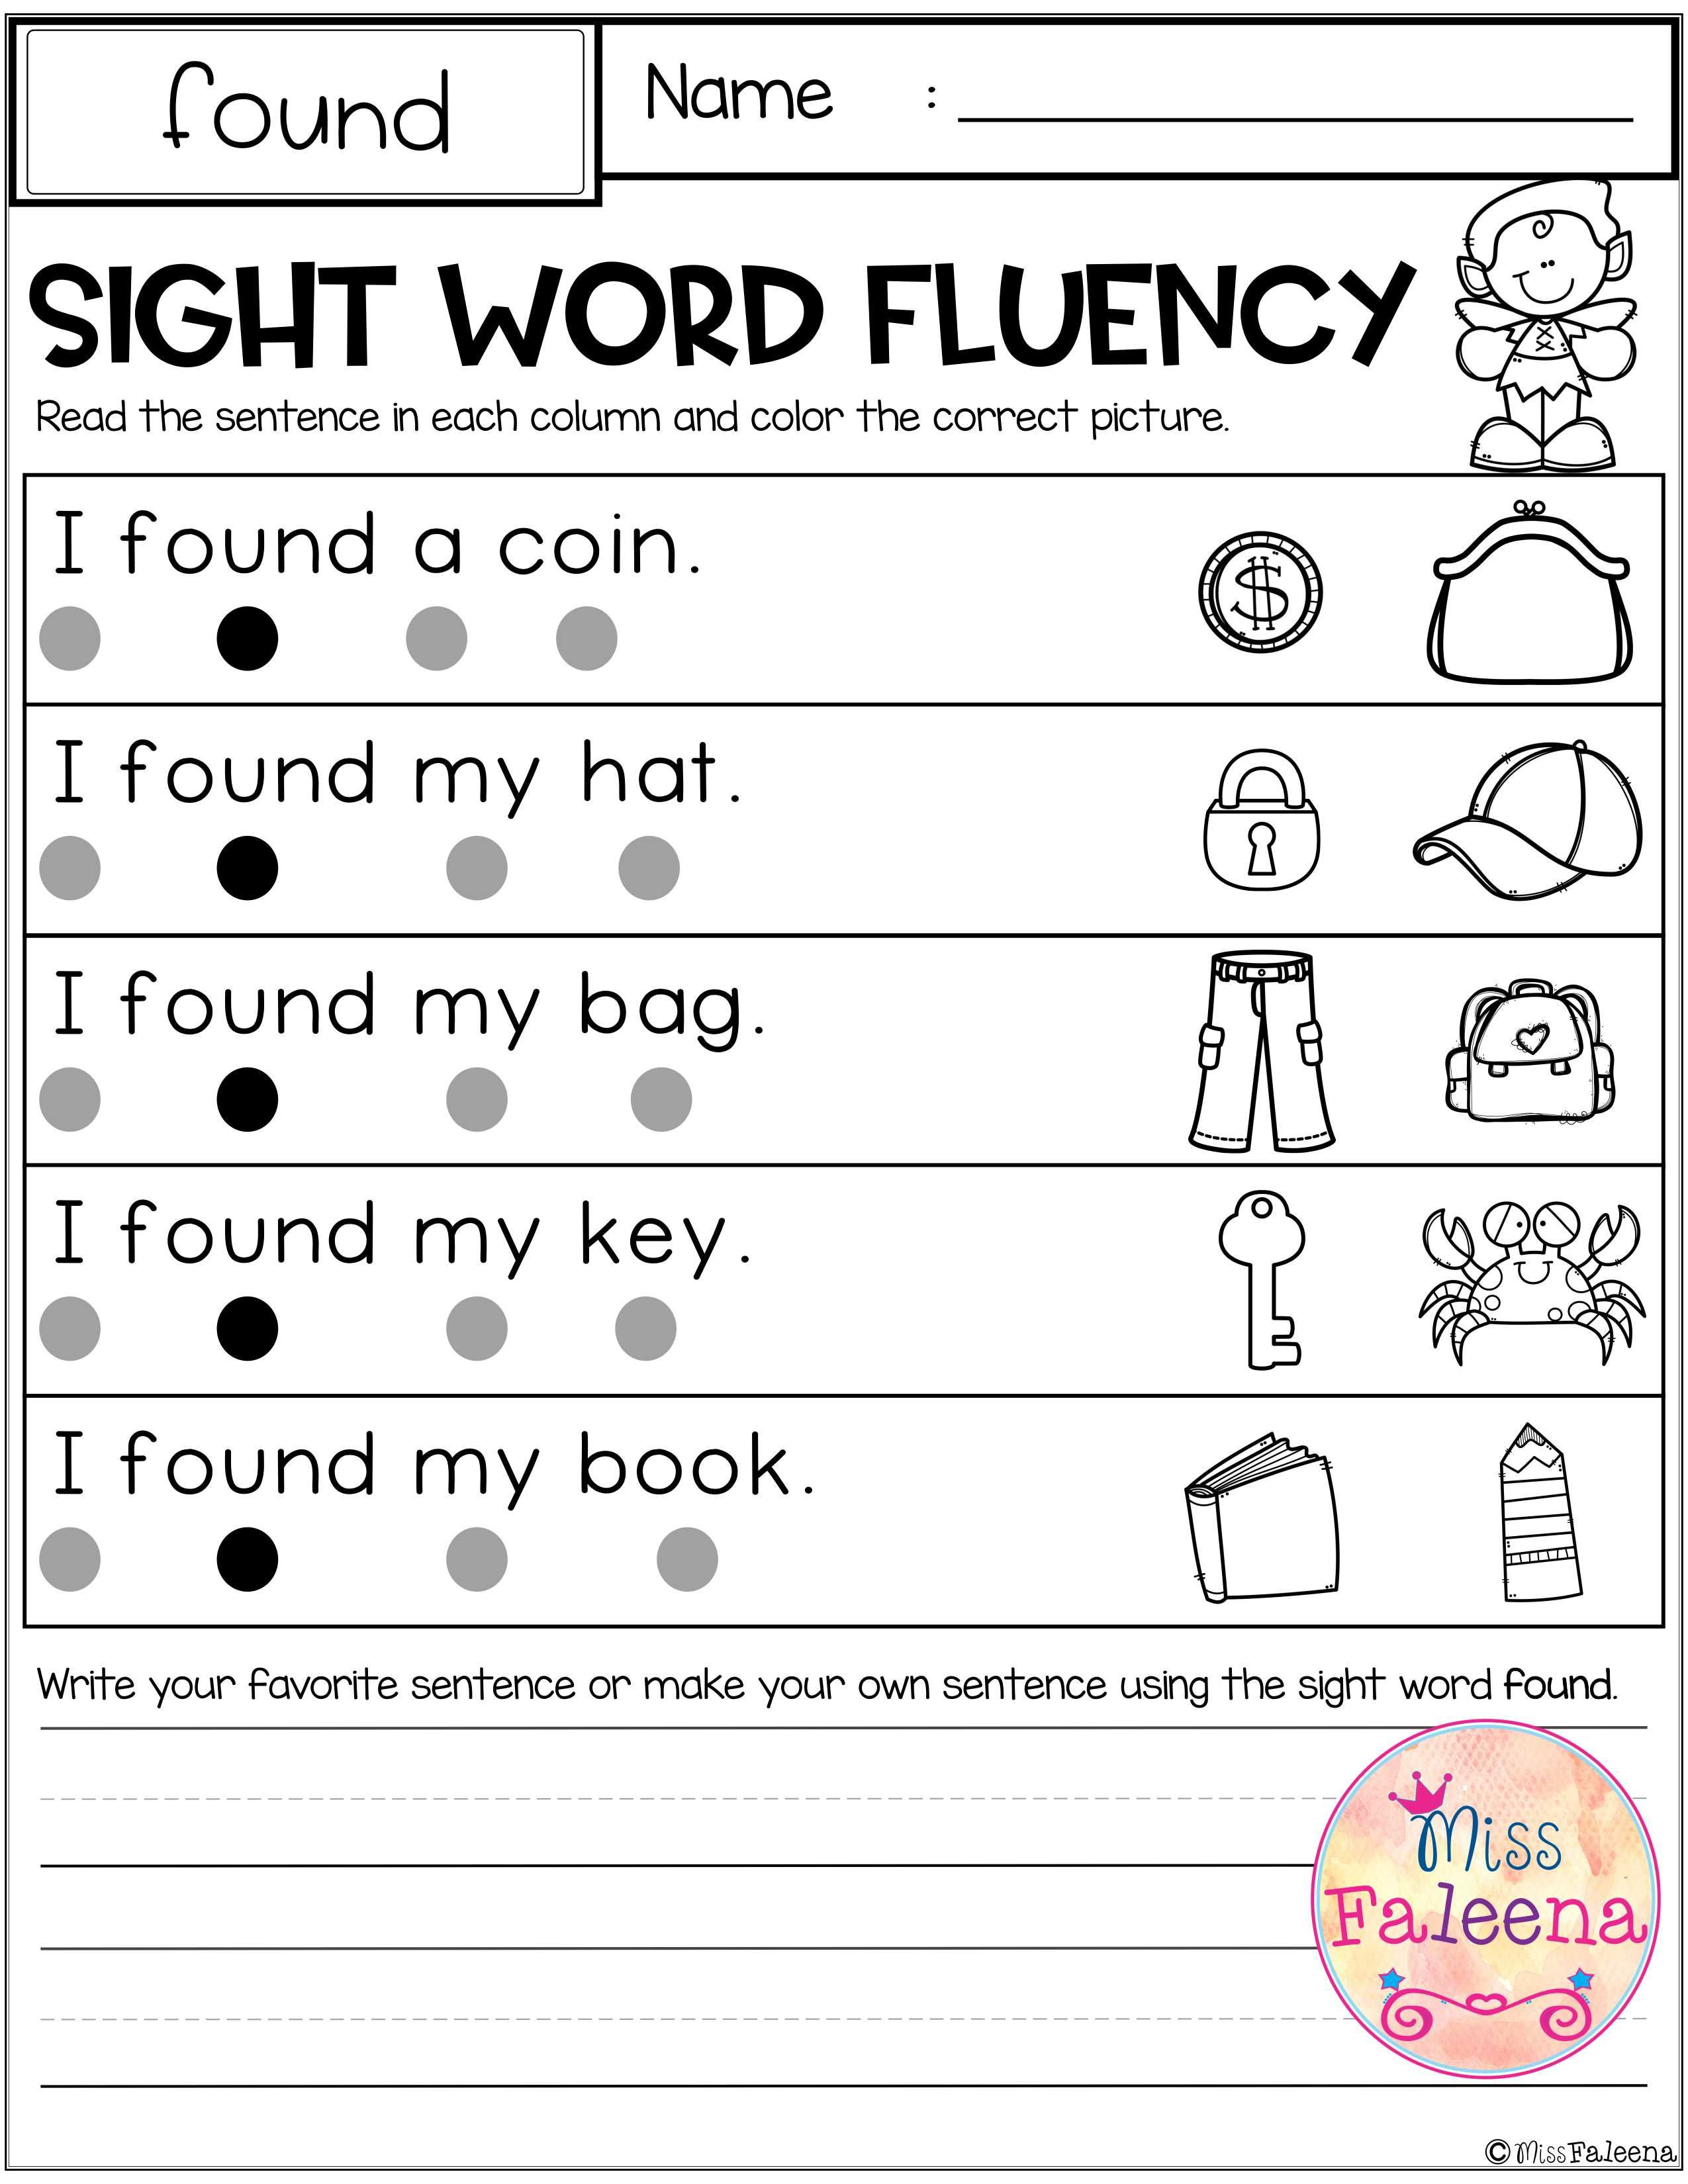 Sight Word Fluency Second Grade With Images Sight Word